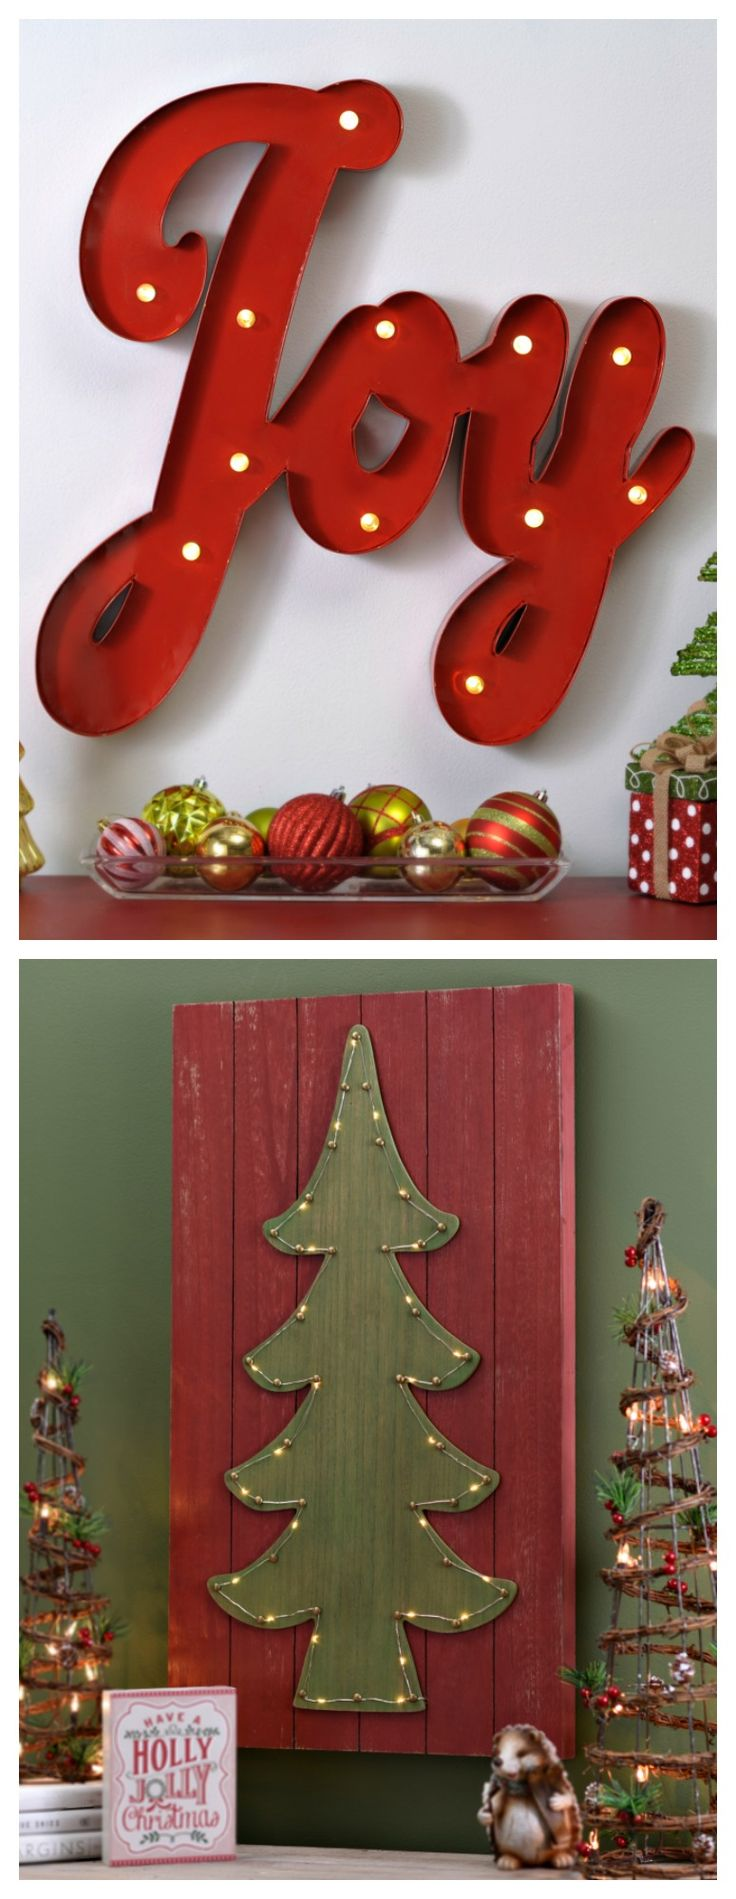 Christmas Decorations For The Wall 17 Best Images About Decorating For Christmas On Pinterest